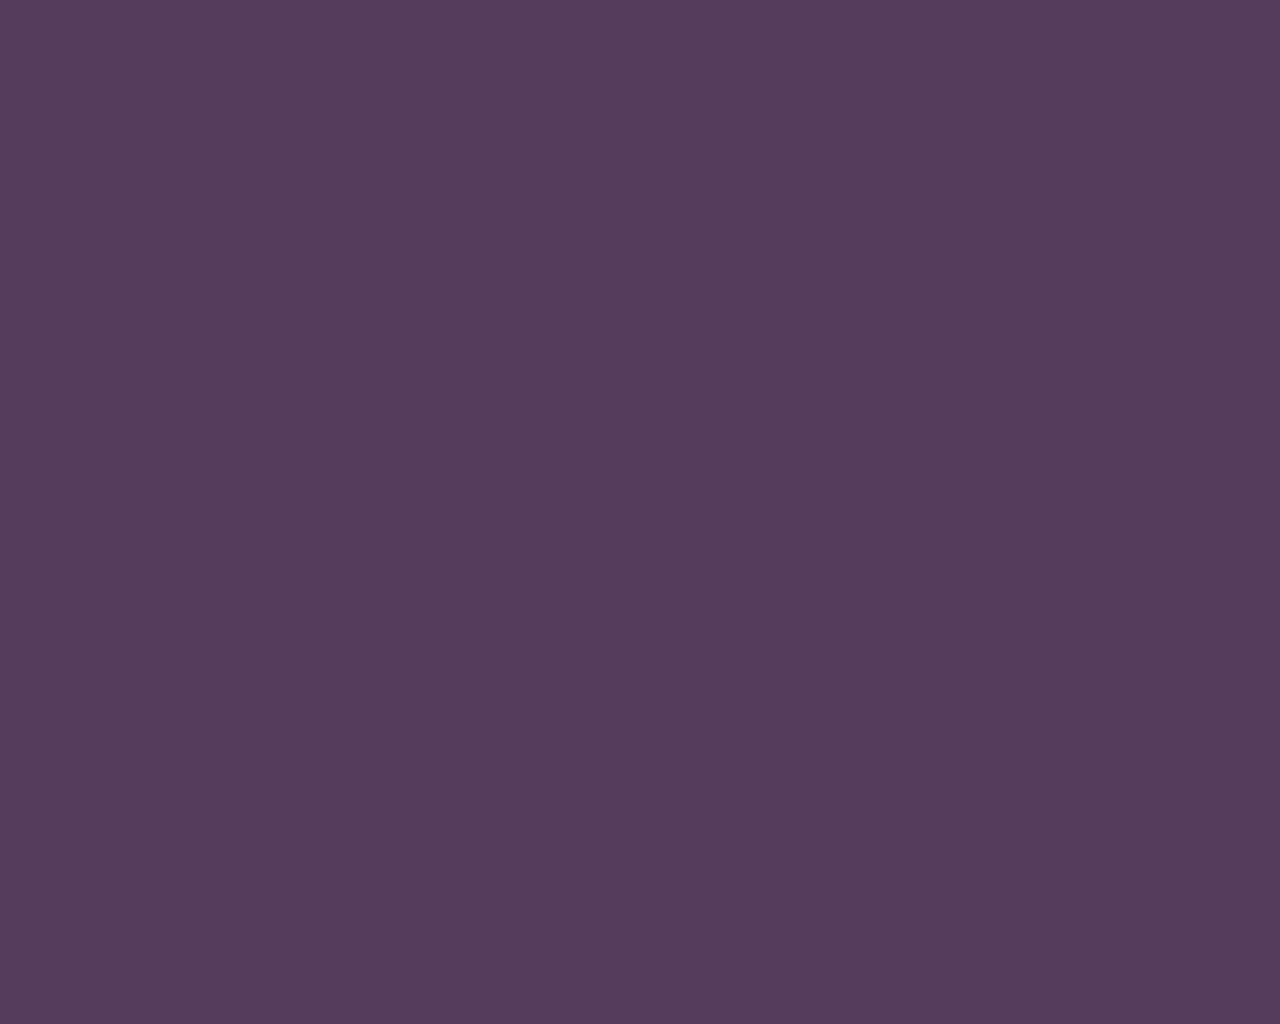 1280x1024 English Violet Solid Color Background